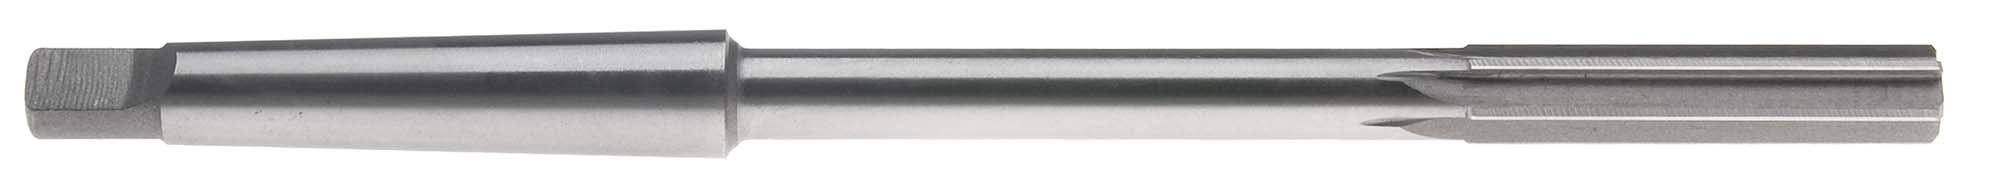 "1-1/2"" Taper Shank Machine Reamer, Straight Flute, High Speed Steel"